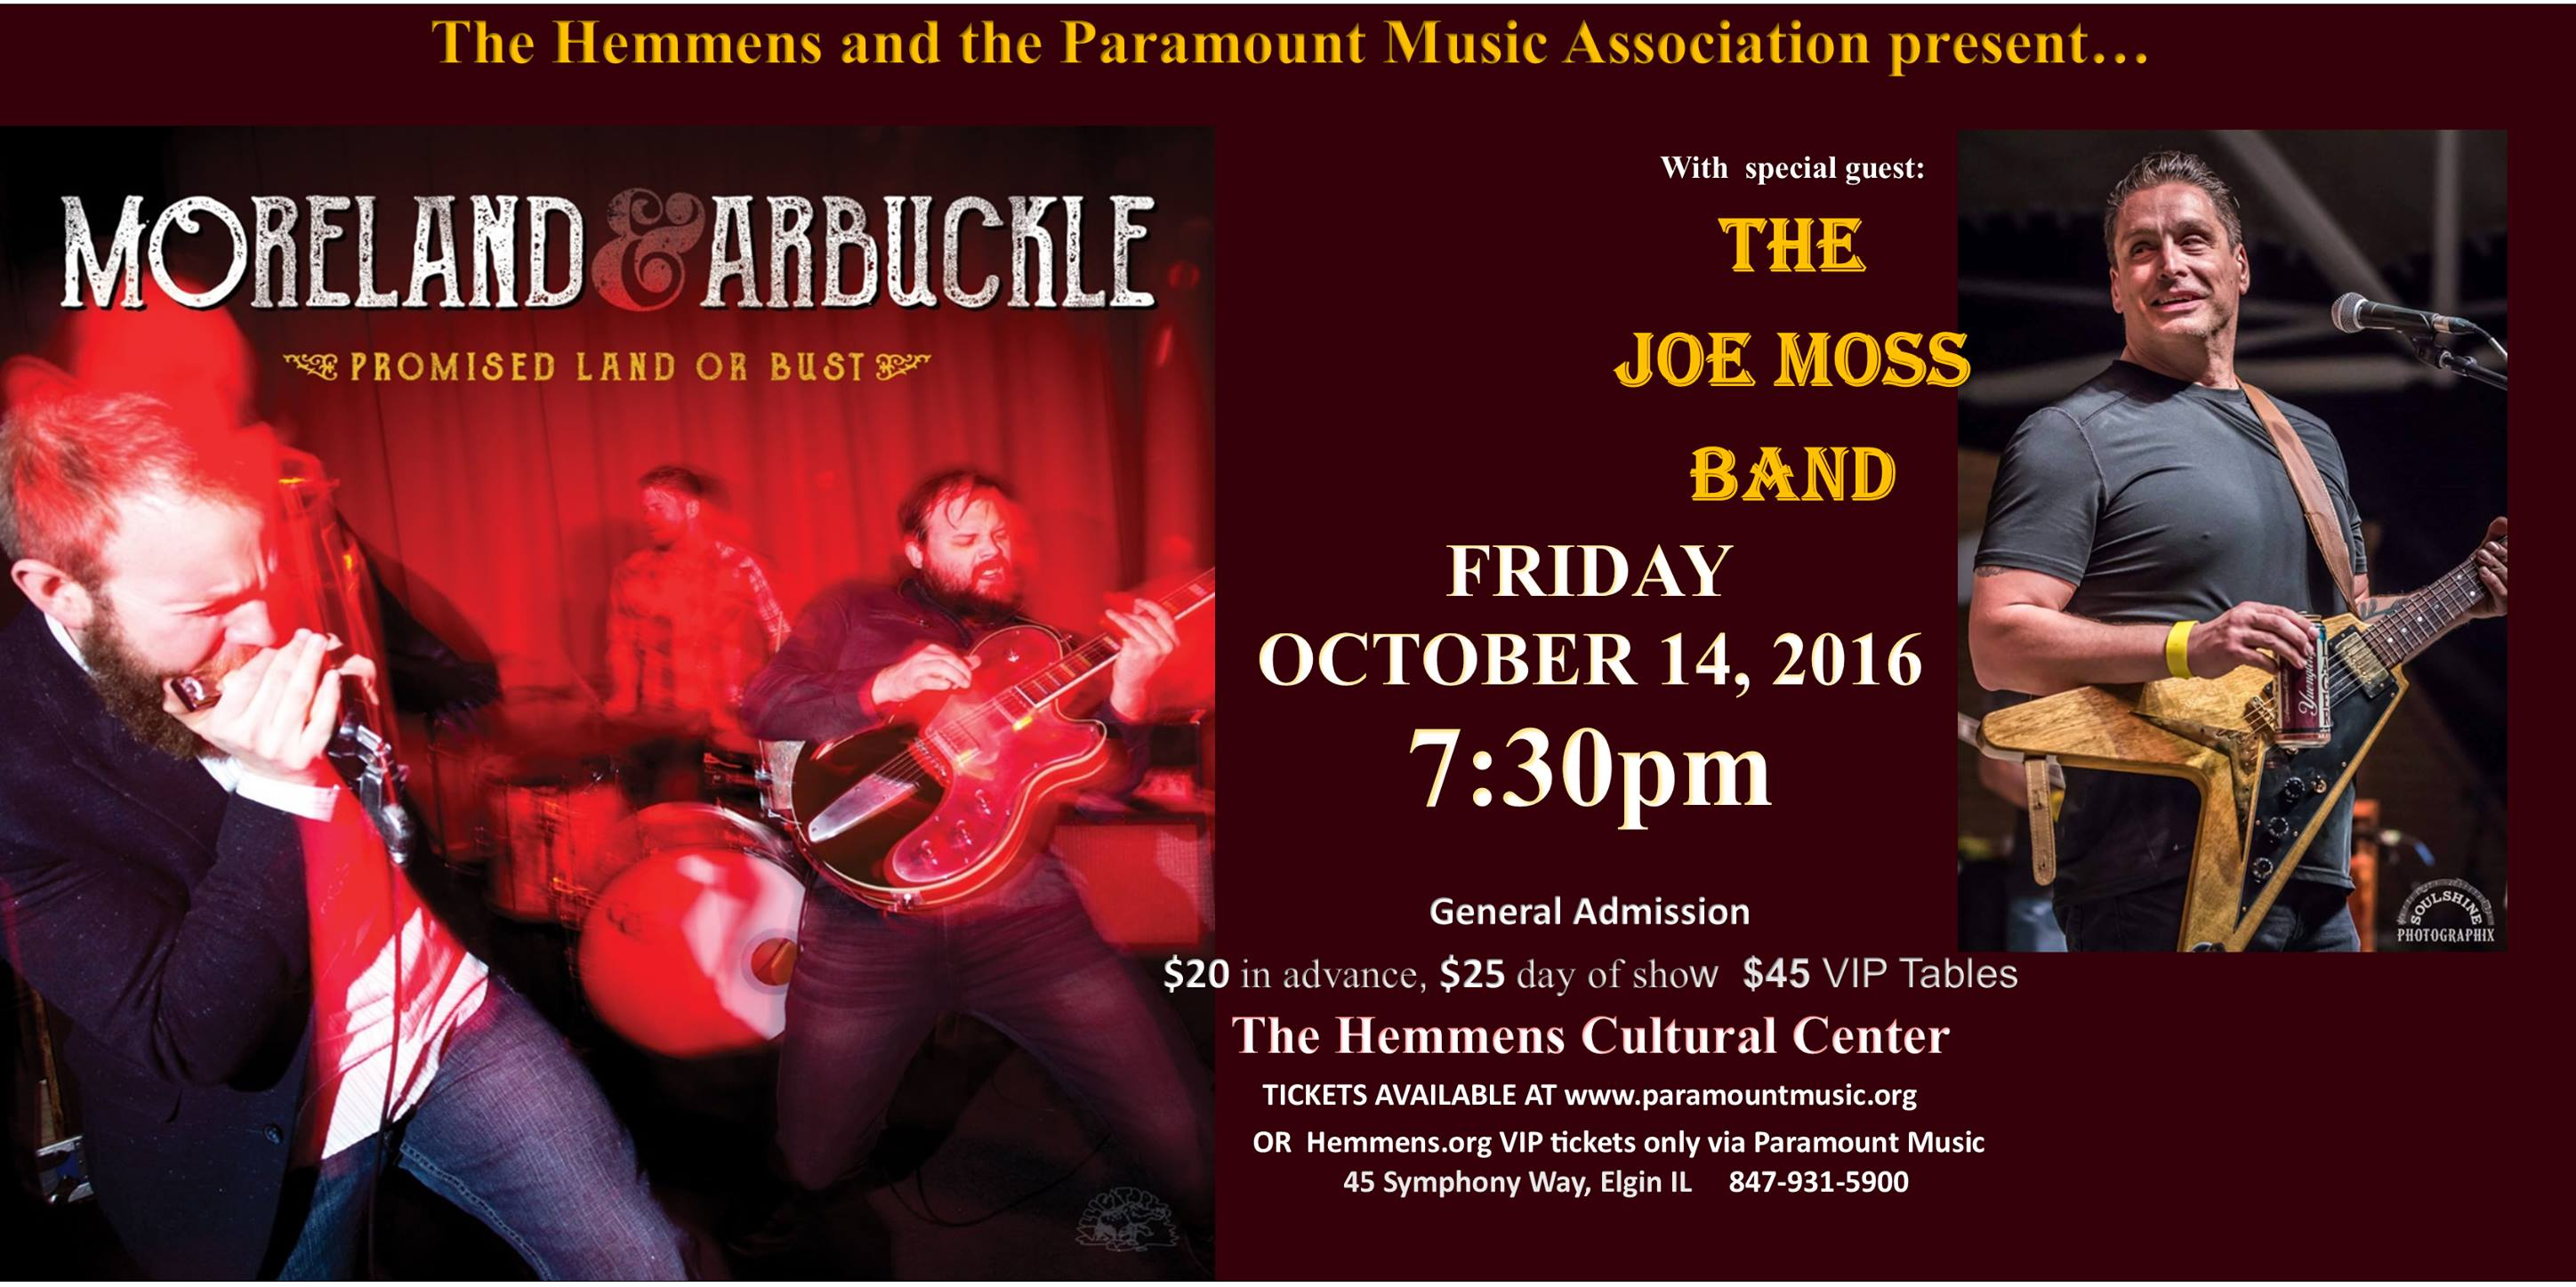 Moreland & Arbuckle with Guest Joe Moss - Oct 14th 7:30 pm at Hemmens Cultural Center in Elgin @ The Hemmens Cultural Center | Elgin | Illinois | United States